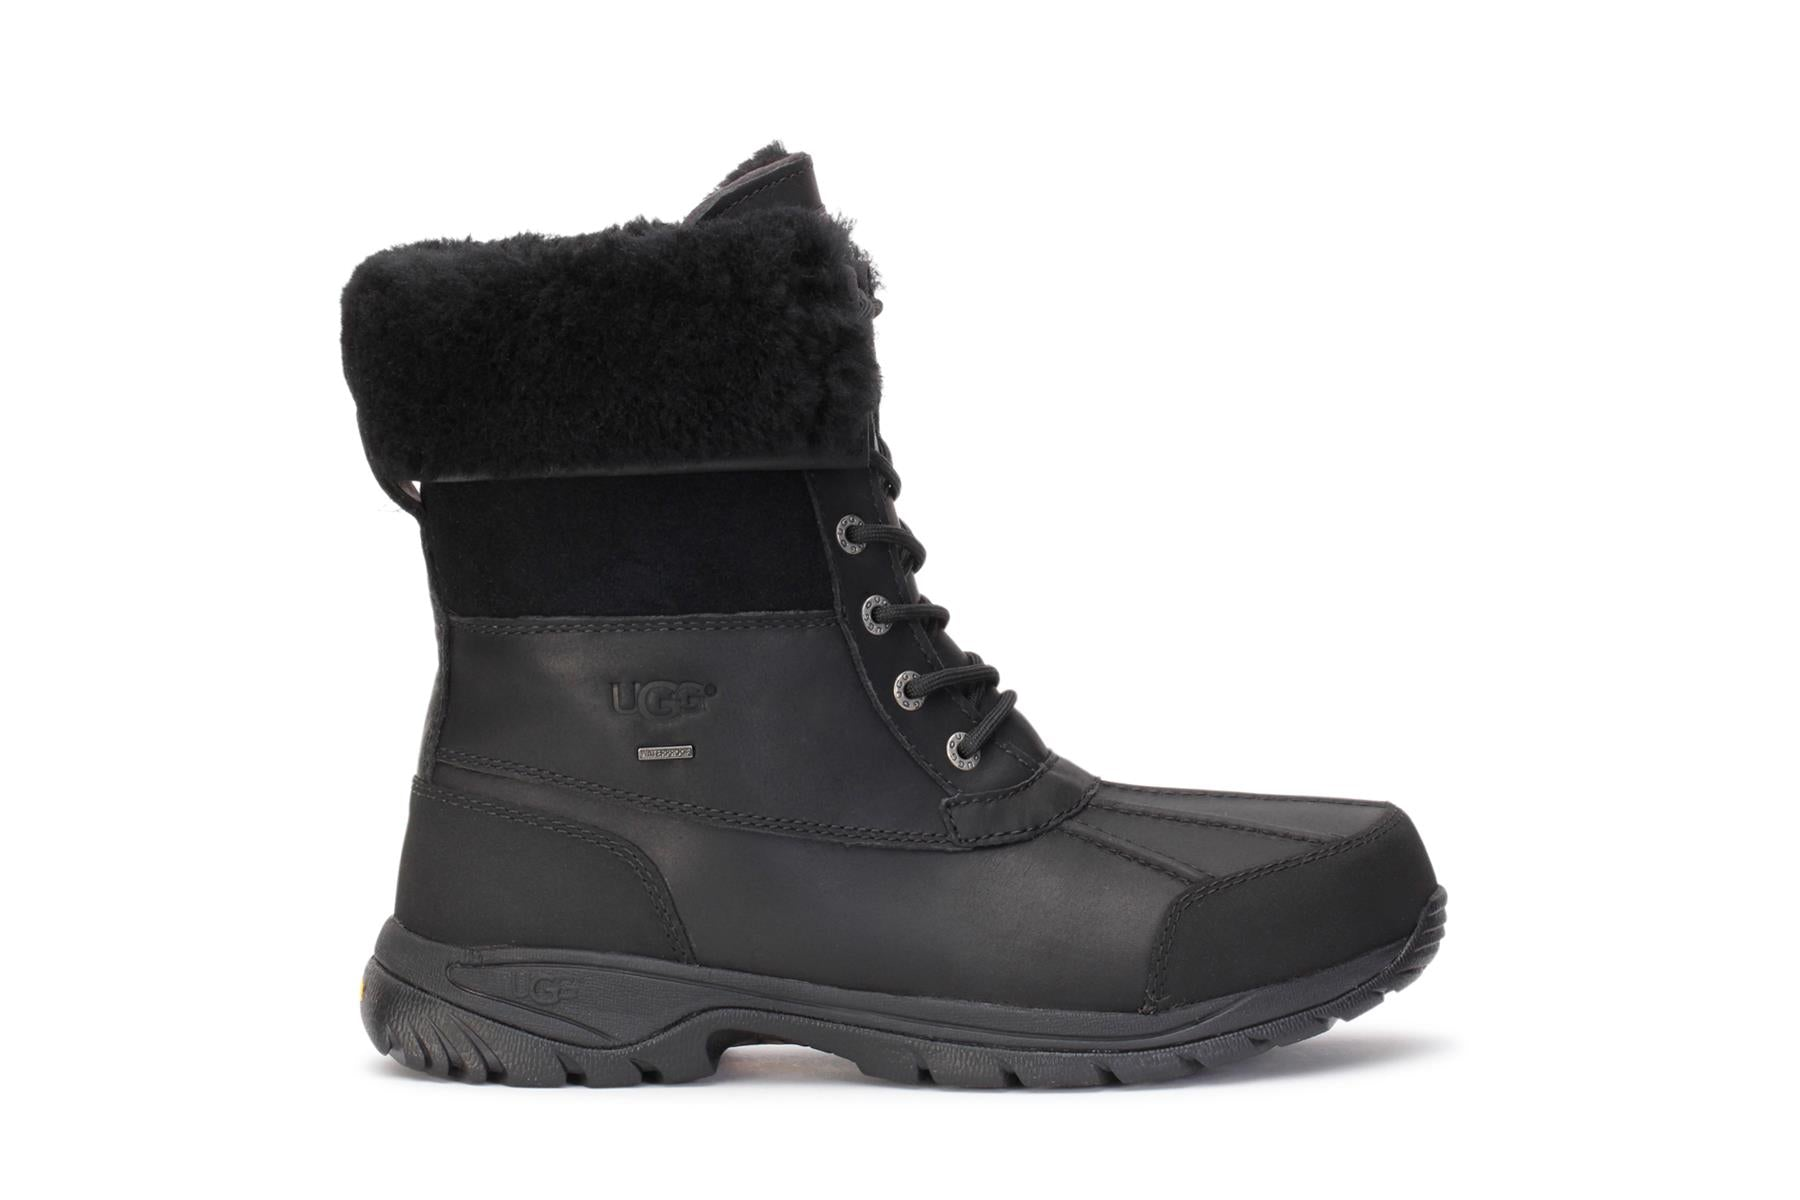 ugg-mens-winter-waterproof-boots-butte-black-main